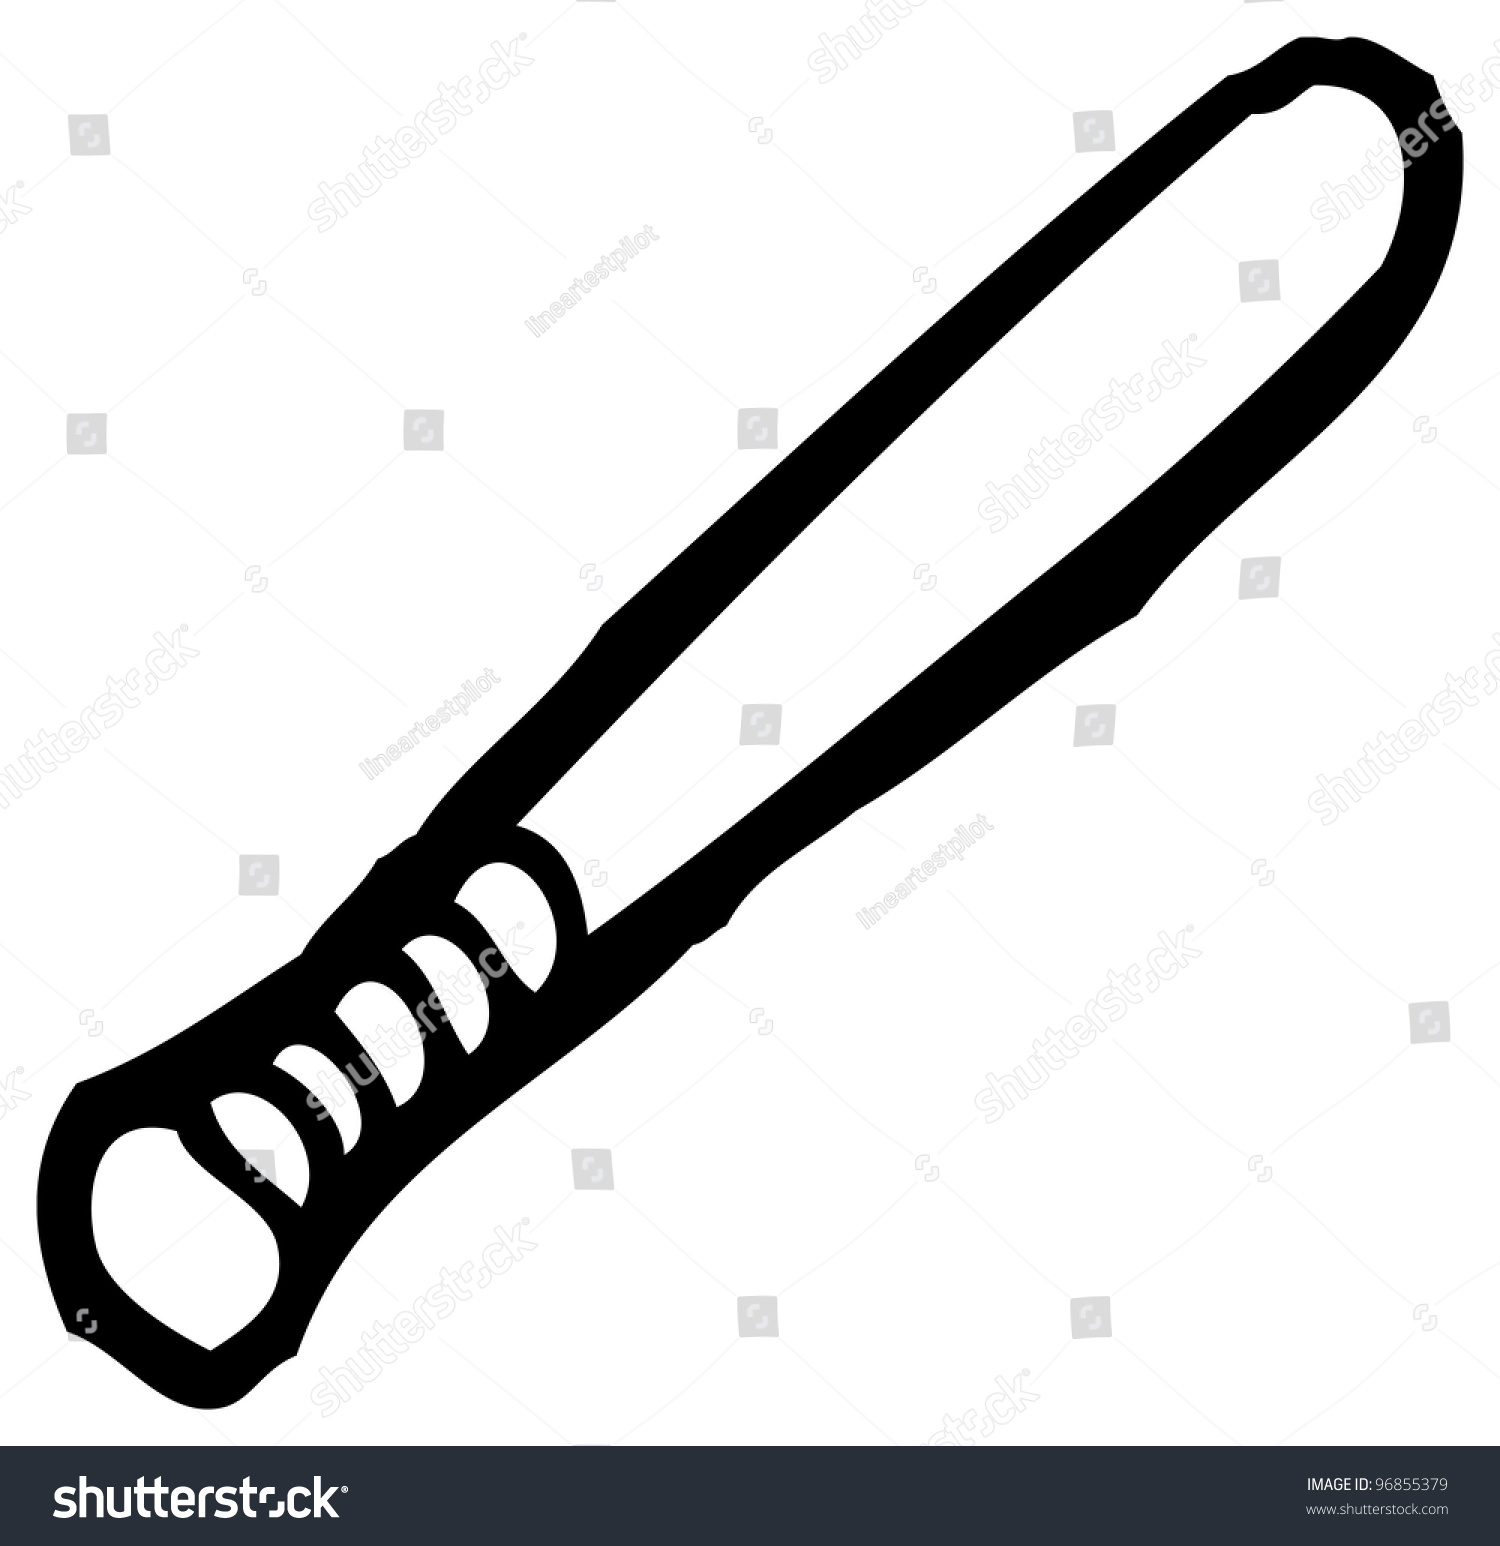 Baseball Bat Cartoon Stock Illustration 96855379 - Shutterstock